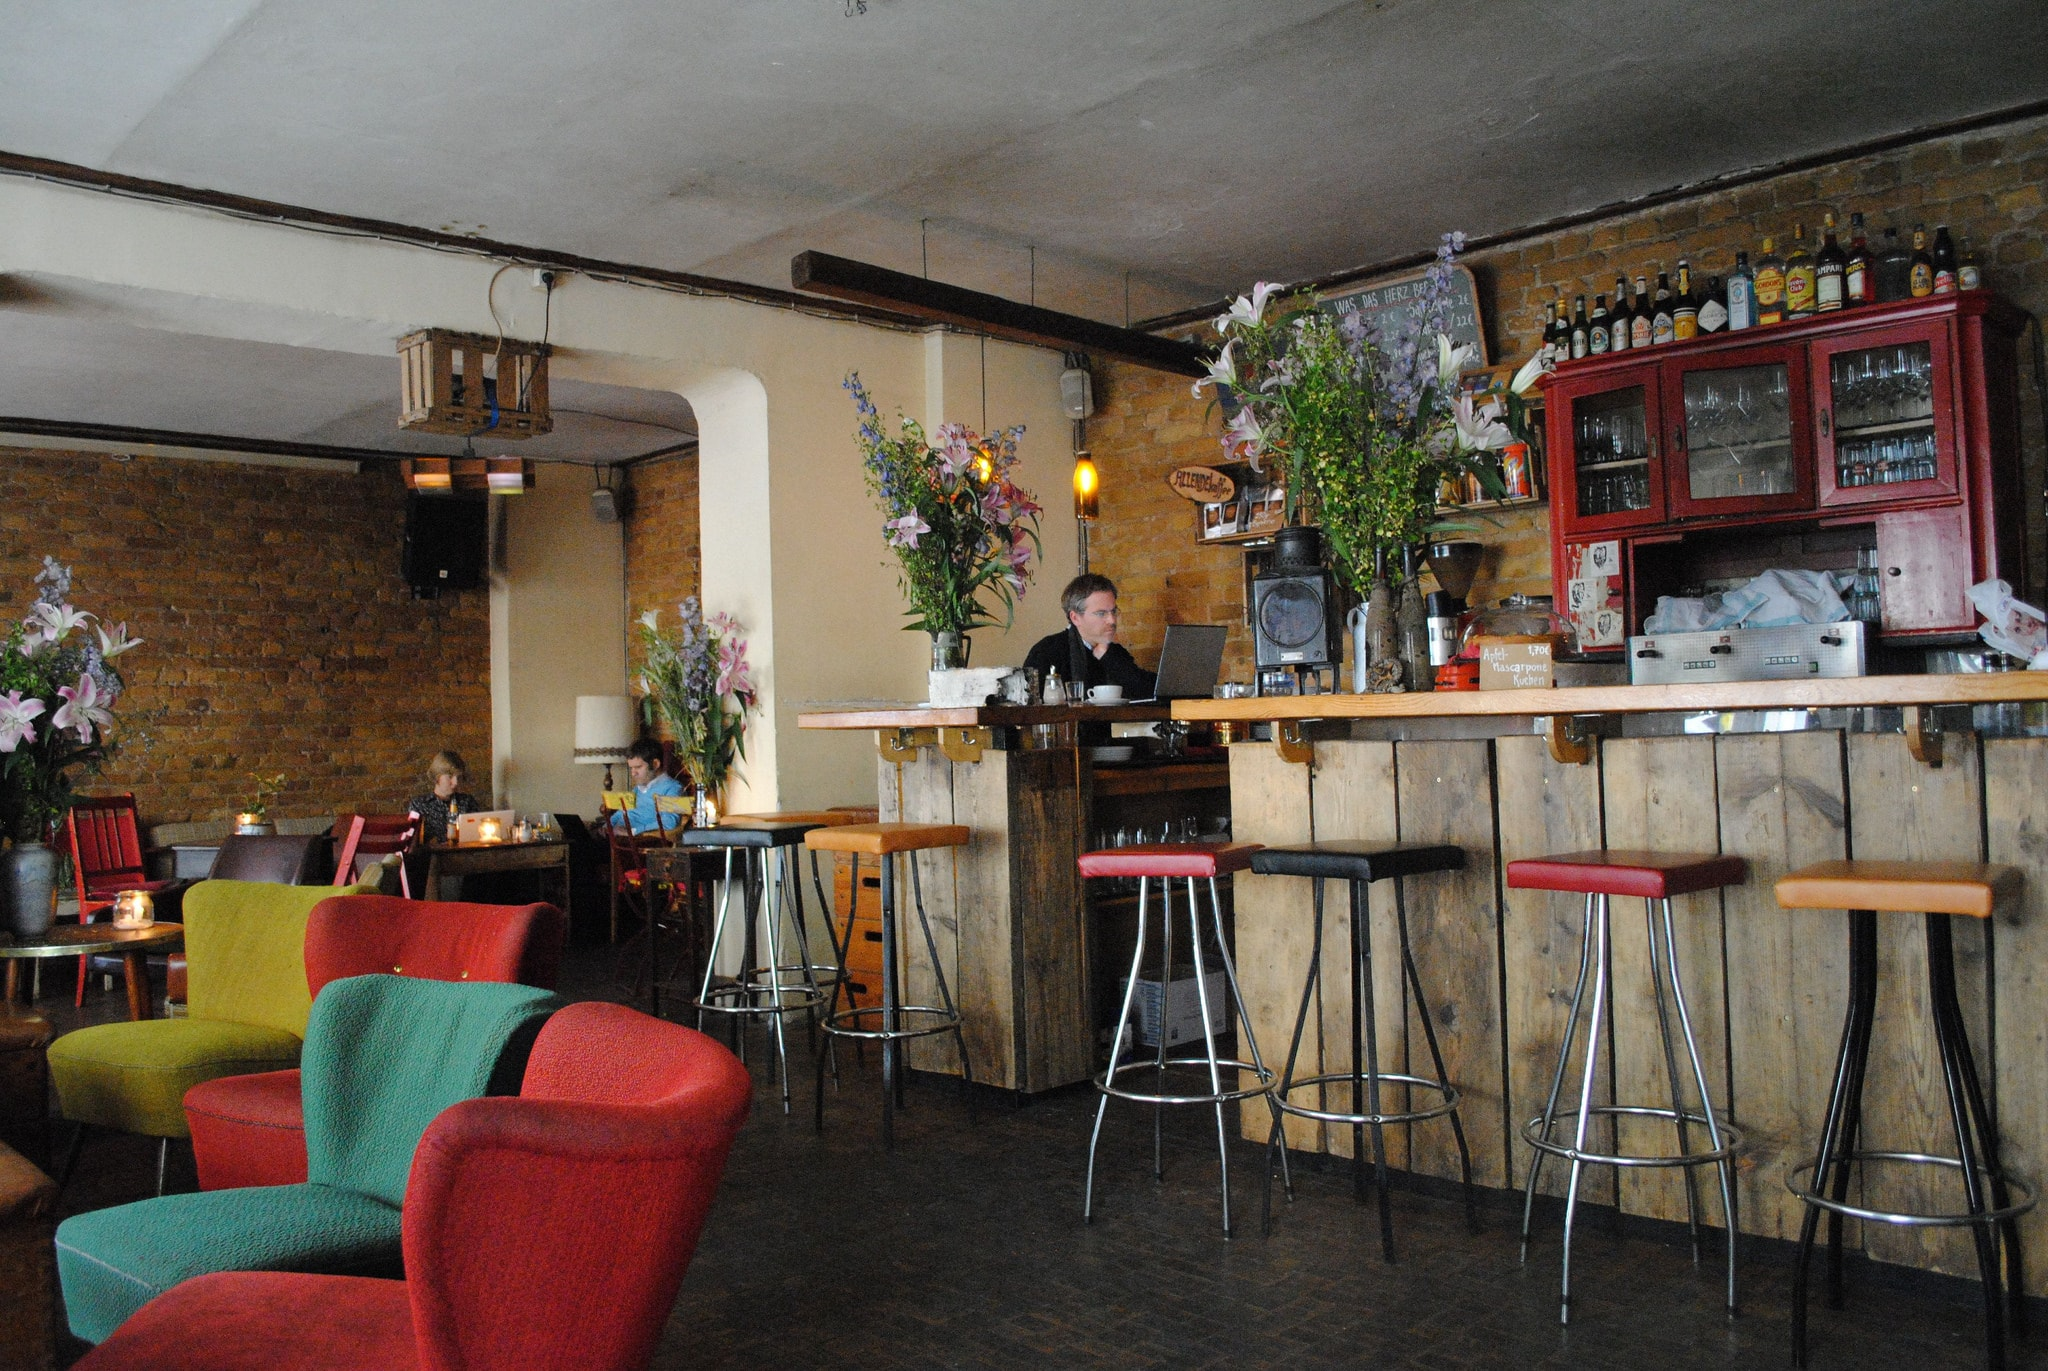 The 10 Best Bars in Kreuzberg, Berlin